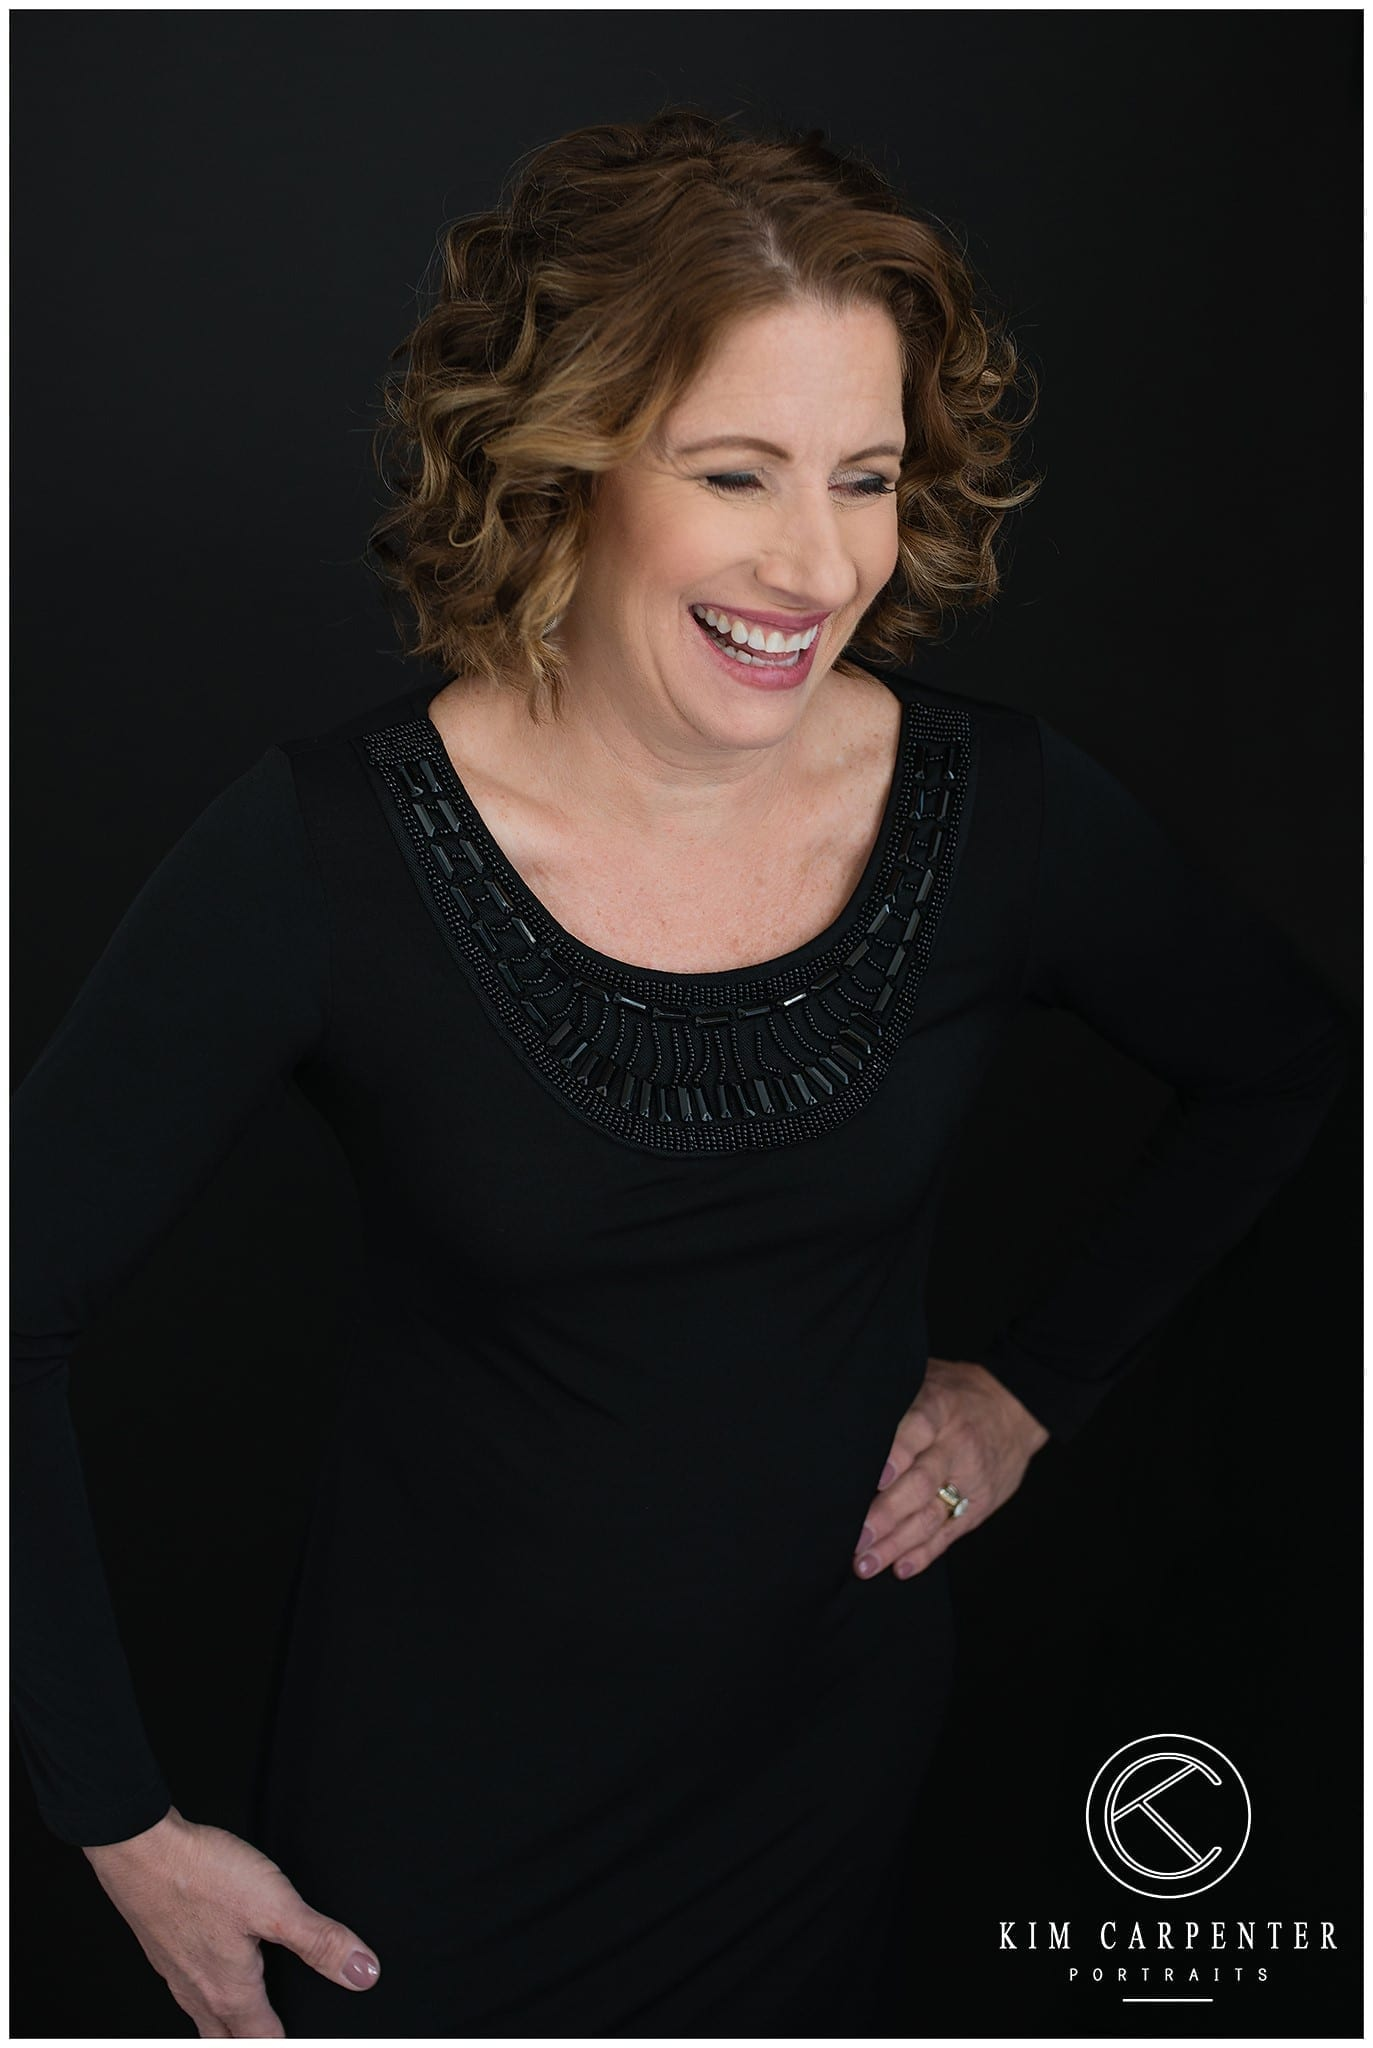 Image captured of a woman laughing wearing black.